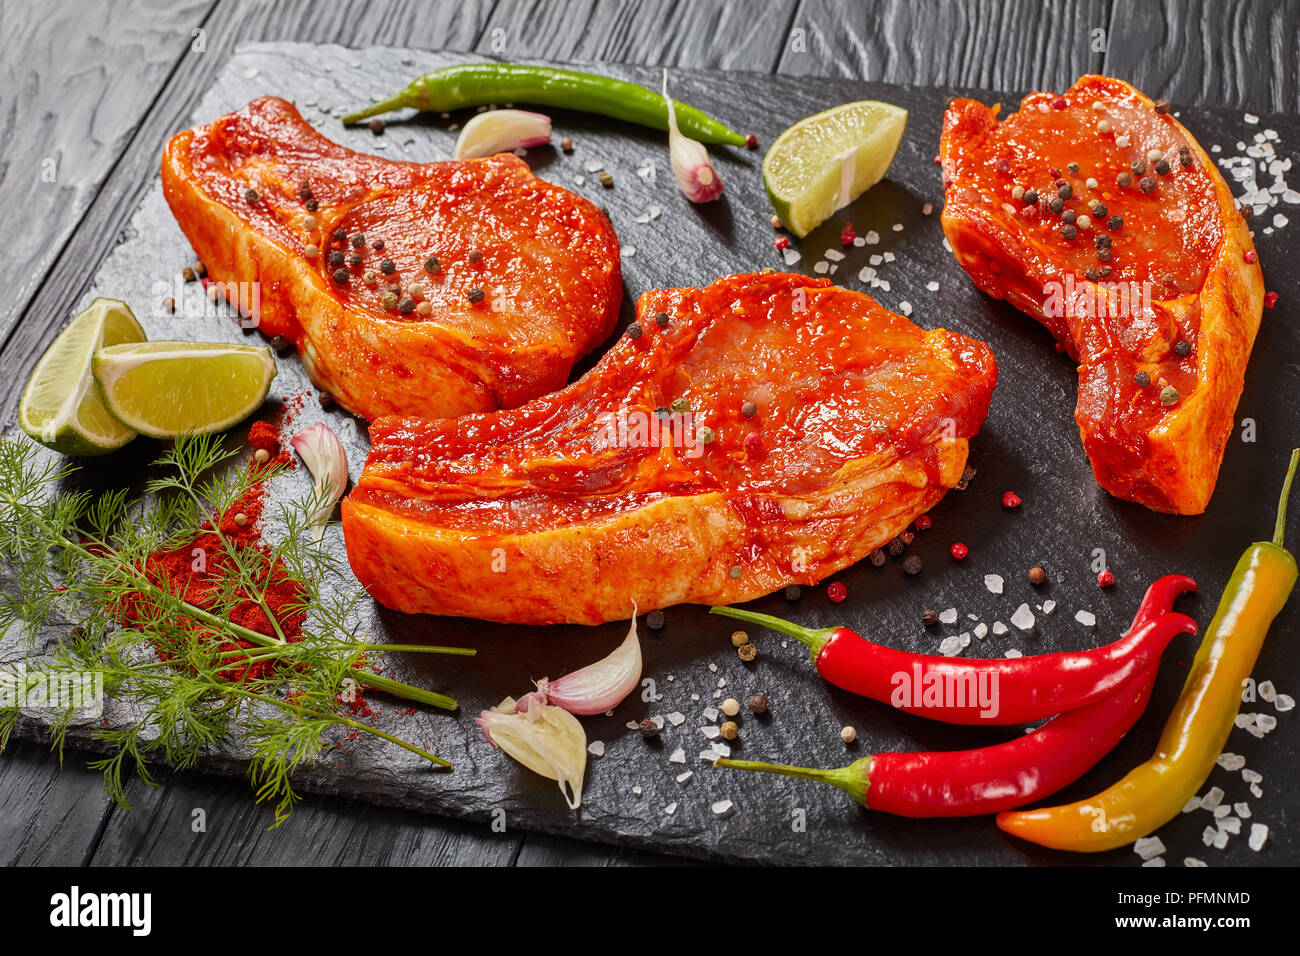 raw pork chops prepared to cook, marinated with spices and red sriracha sauce on black slate tray with chili pepper, salt, lime slices and spices, vie - Stock Image